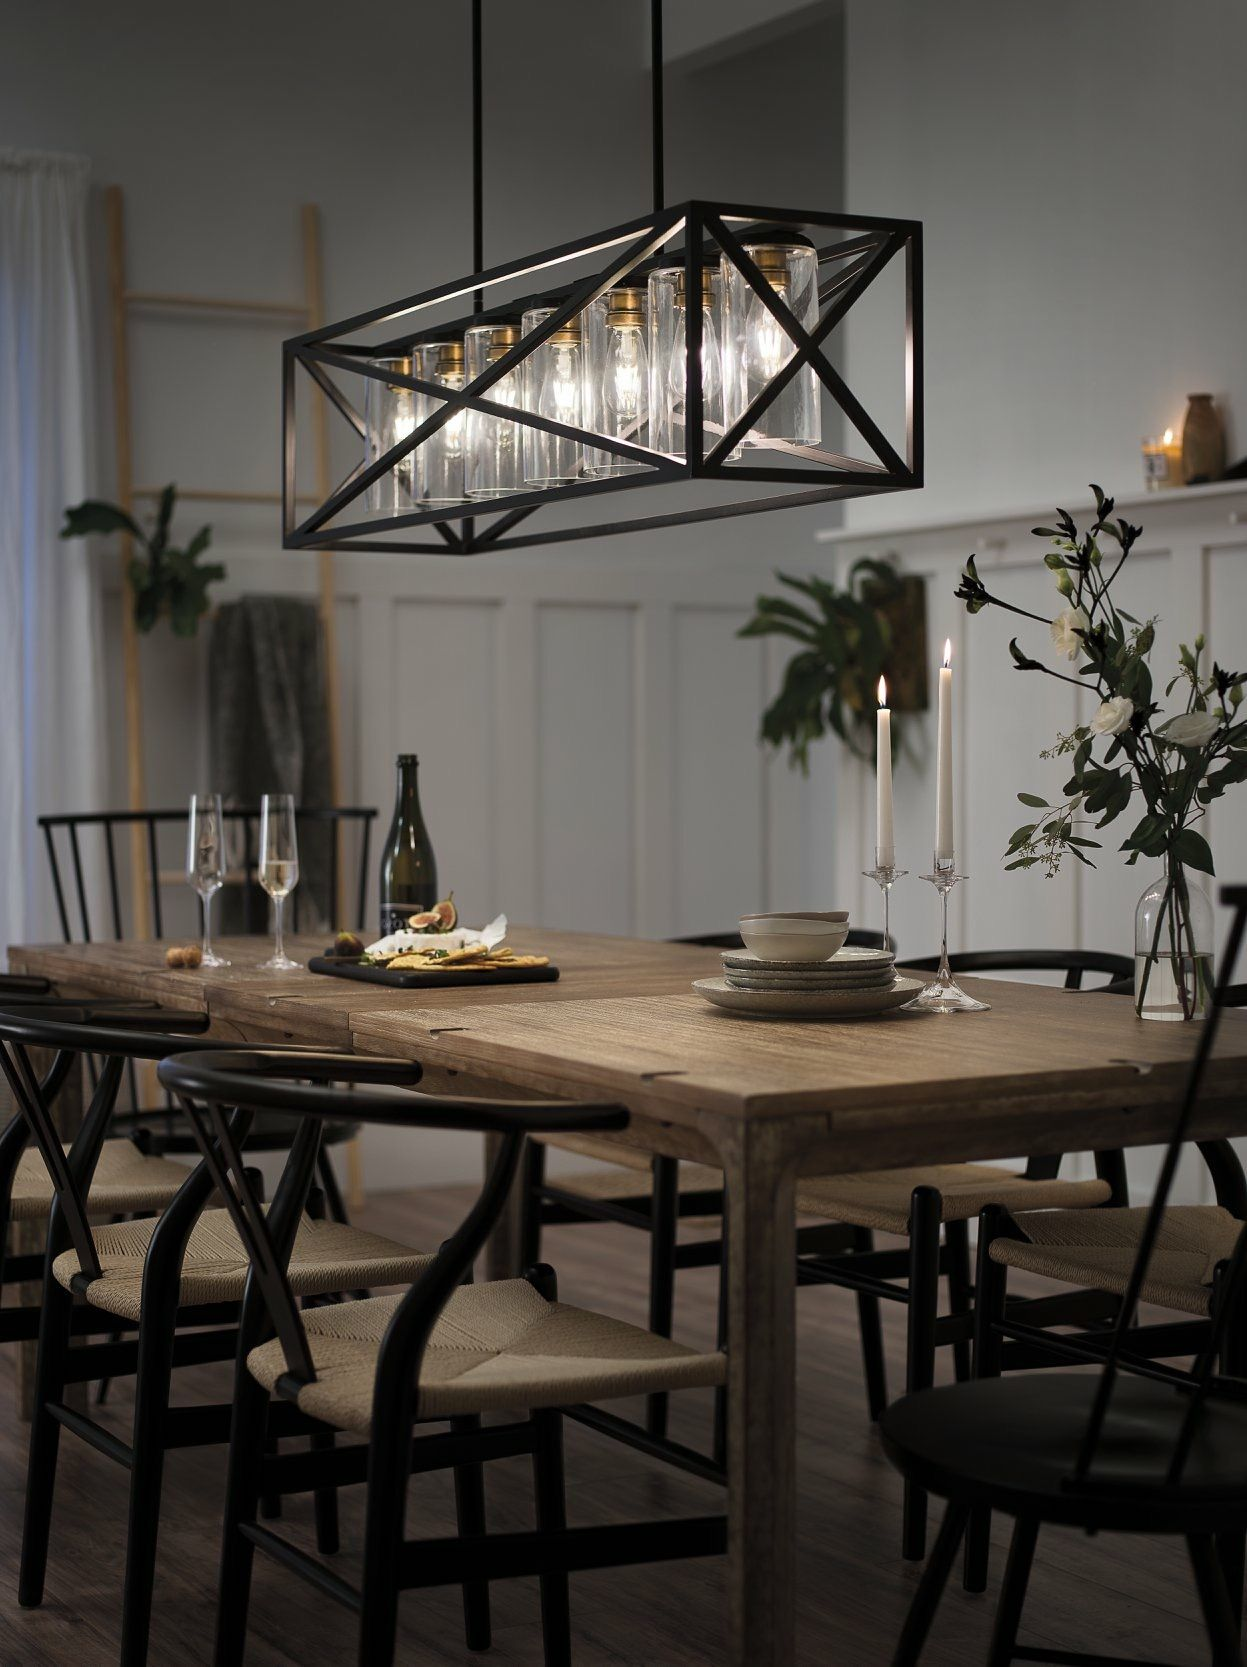 Kichler Linear Chandelier In Dining Room Farmhouse Dining Room Lighting Dining Room Chandelier Modern Farmhouse Lighting